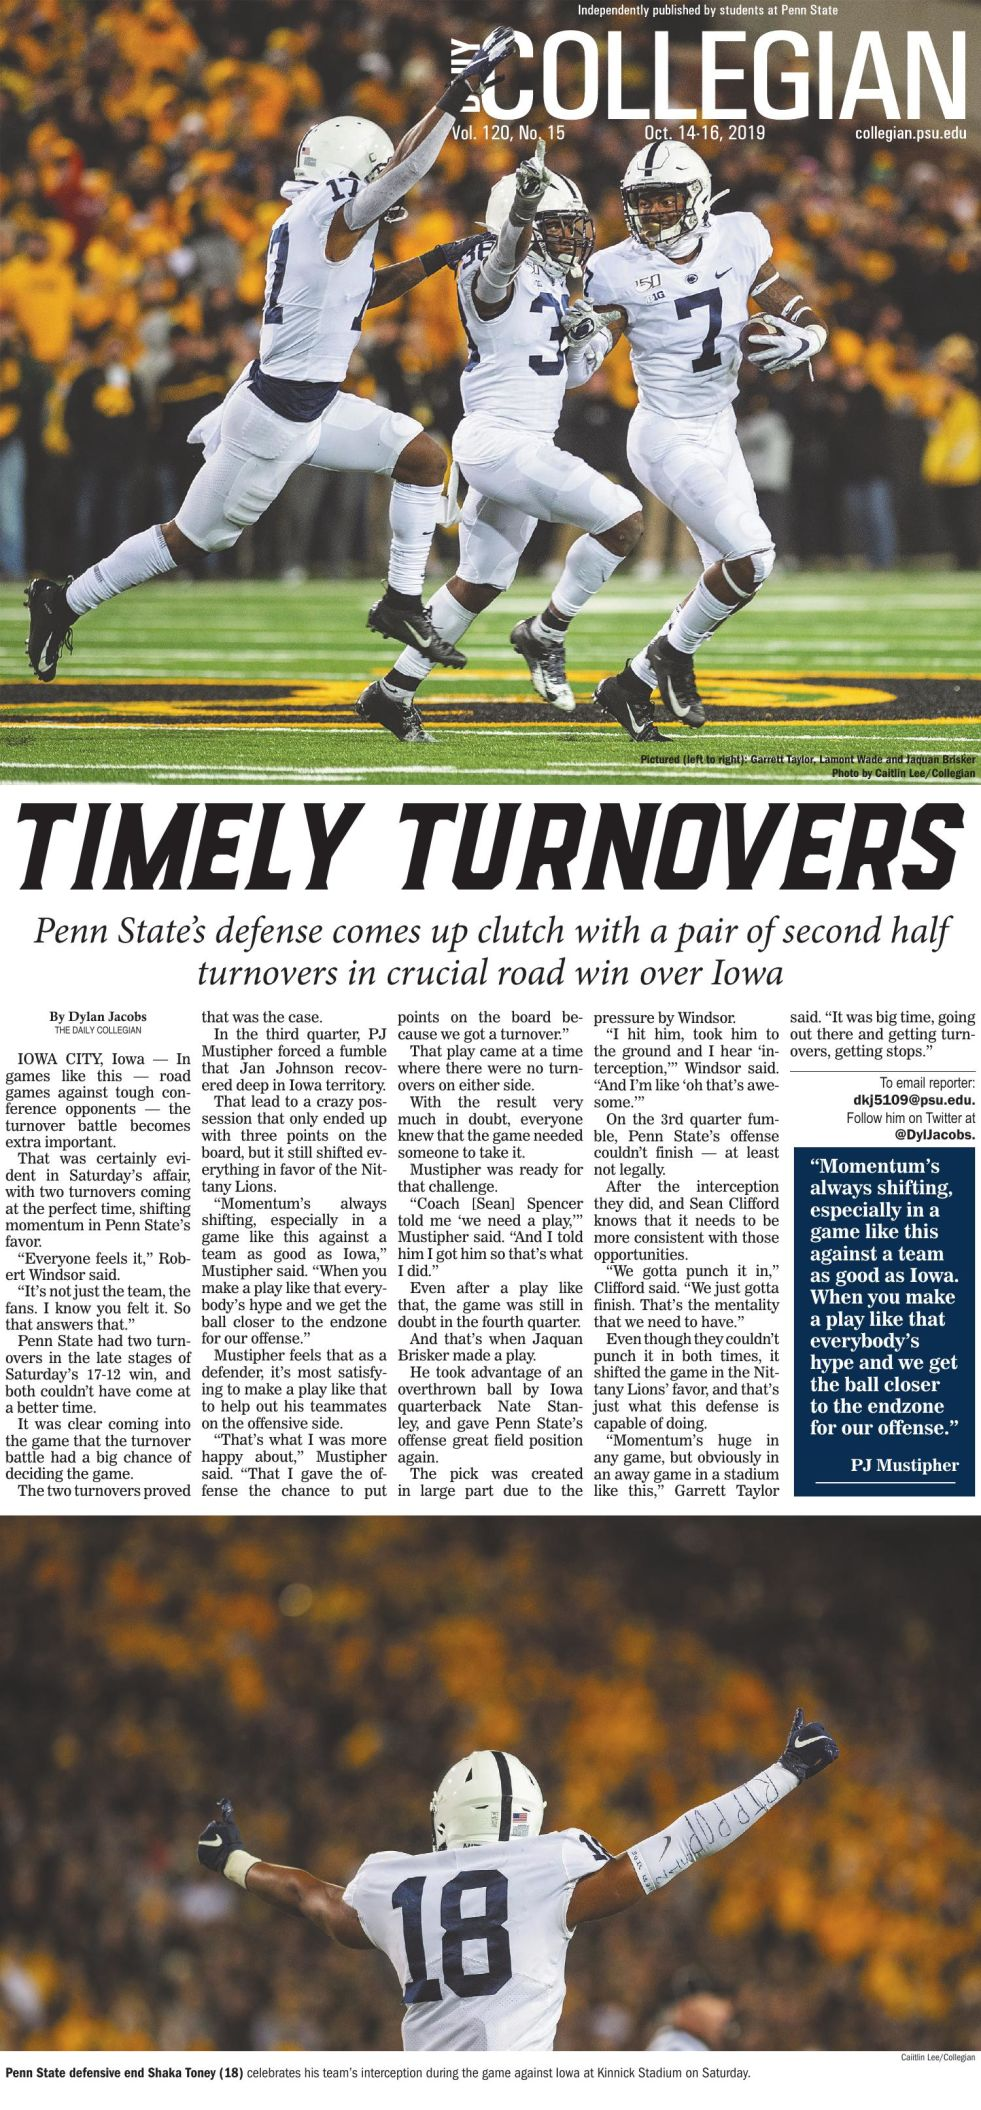 The Daily Collegian for Oct. 14, 2019